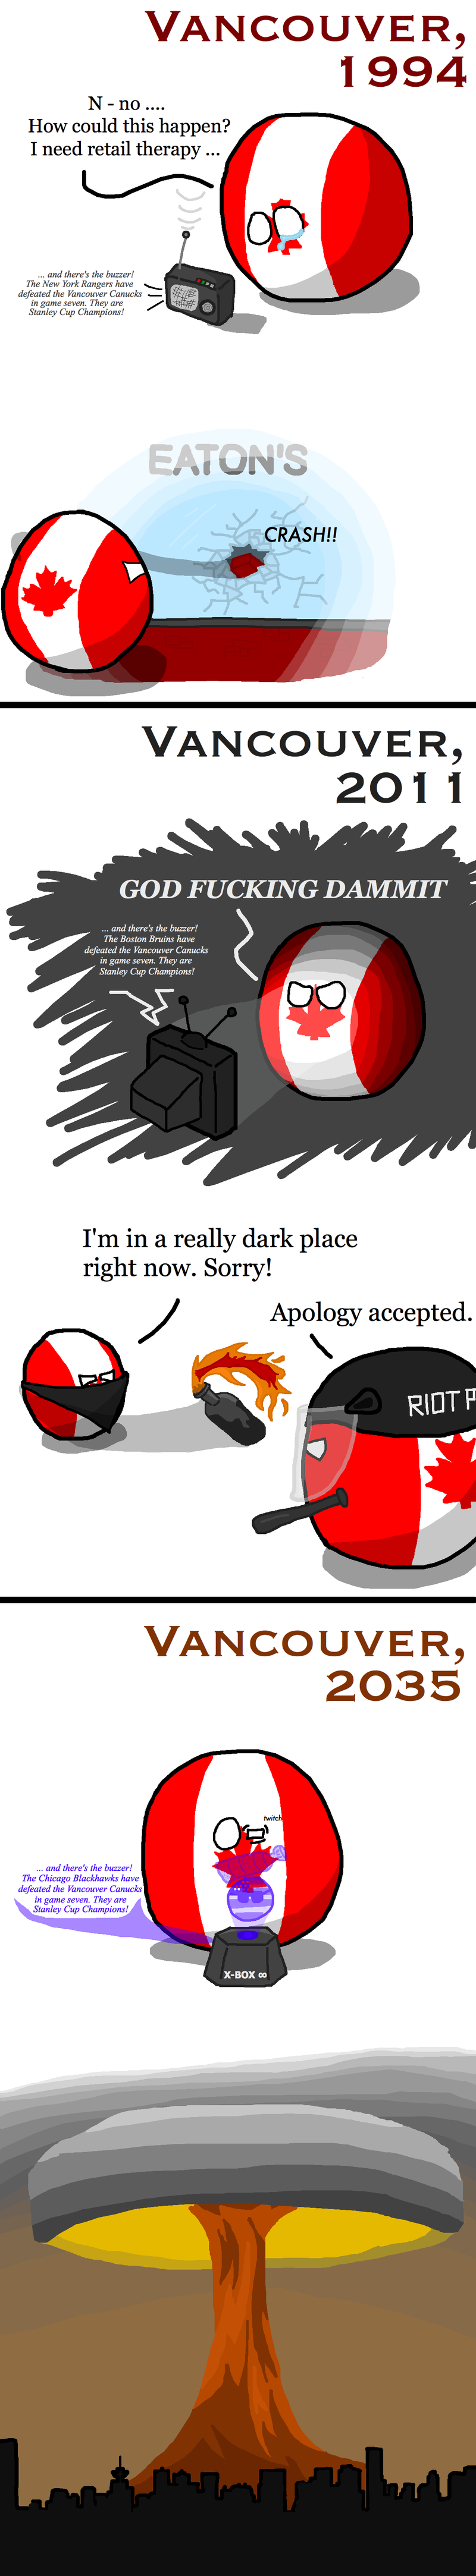 Illustration for article titled Daily Polandball: The Future of Vancouver and the Canucks.